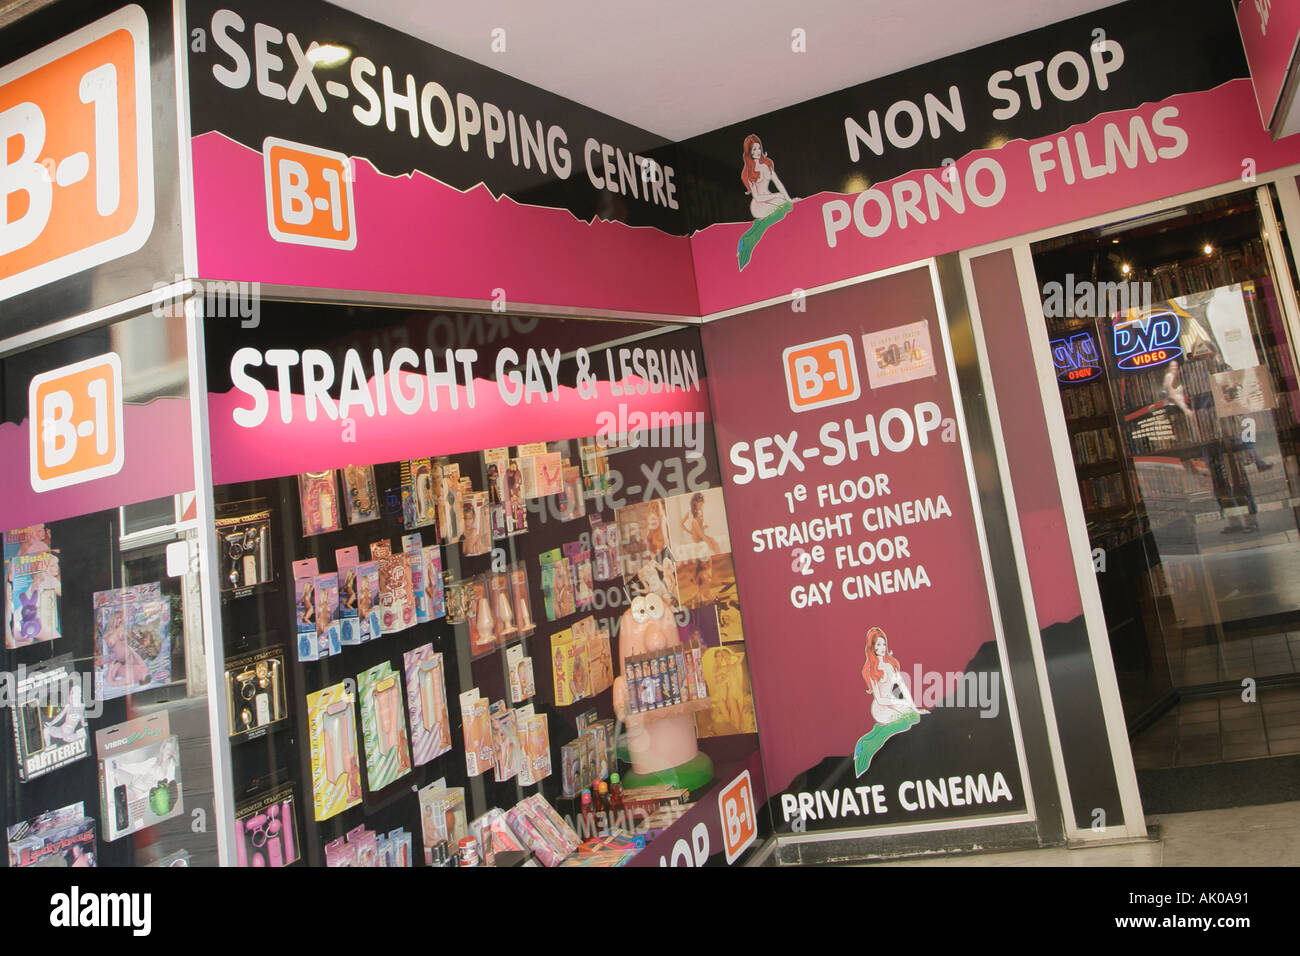 sex shops in nerherlands